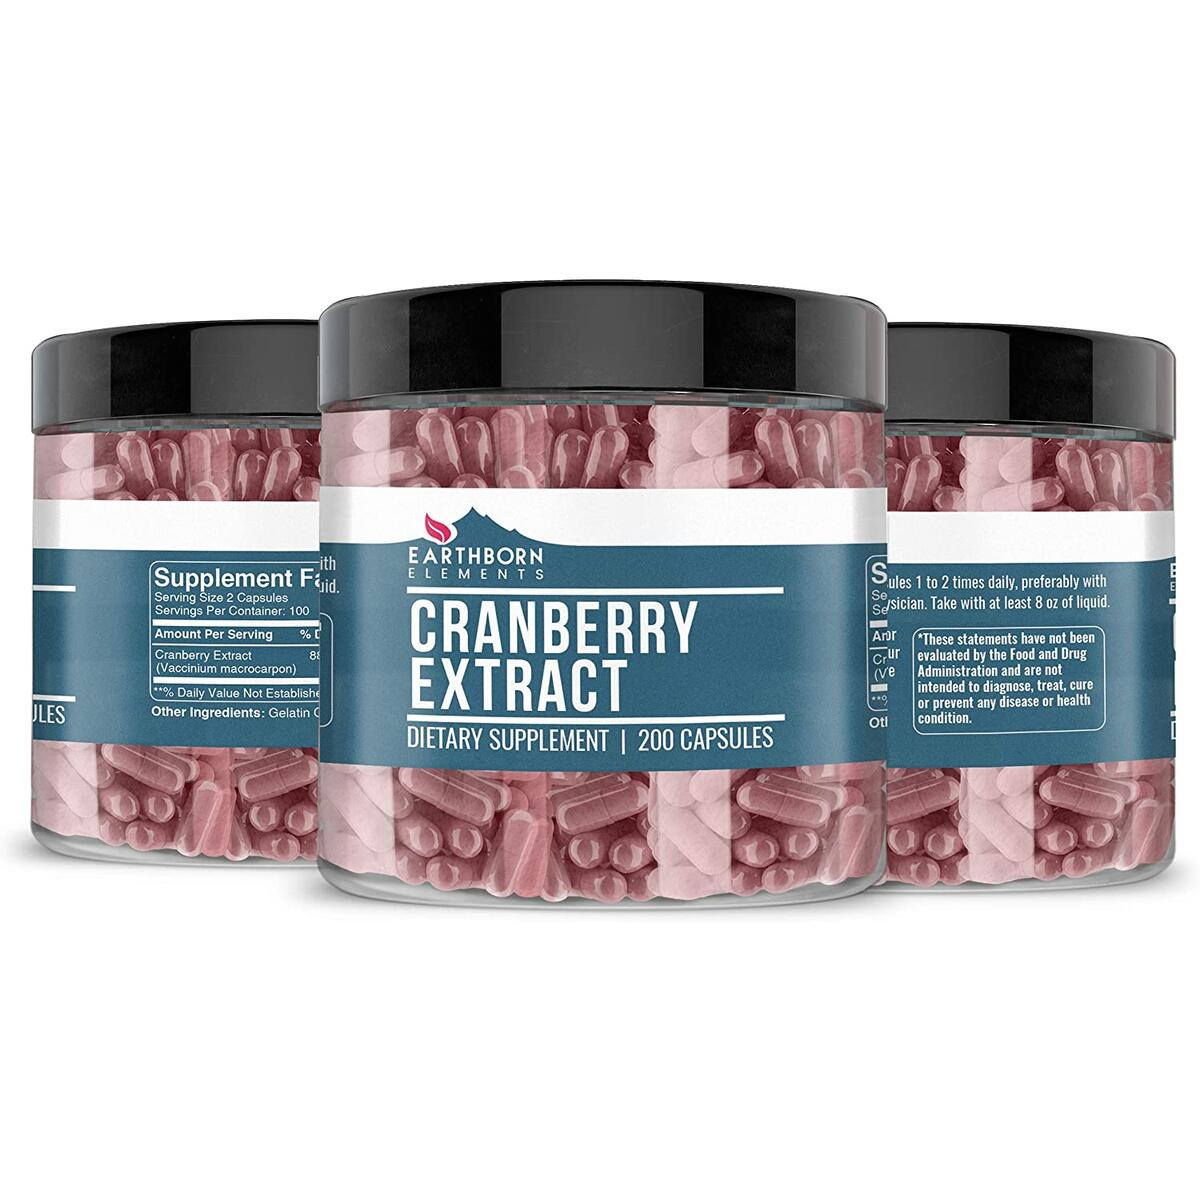 Cranberry Extract, 200 Count, 880 mg Serving, 100% Pure & Natural, No Additives or Fillers, Concentrated Strength, Highest Quality Non-GMO & Gluten-Free, Satisfaction Guarantee, Made in The USA